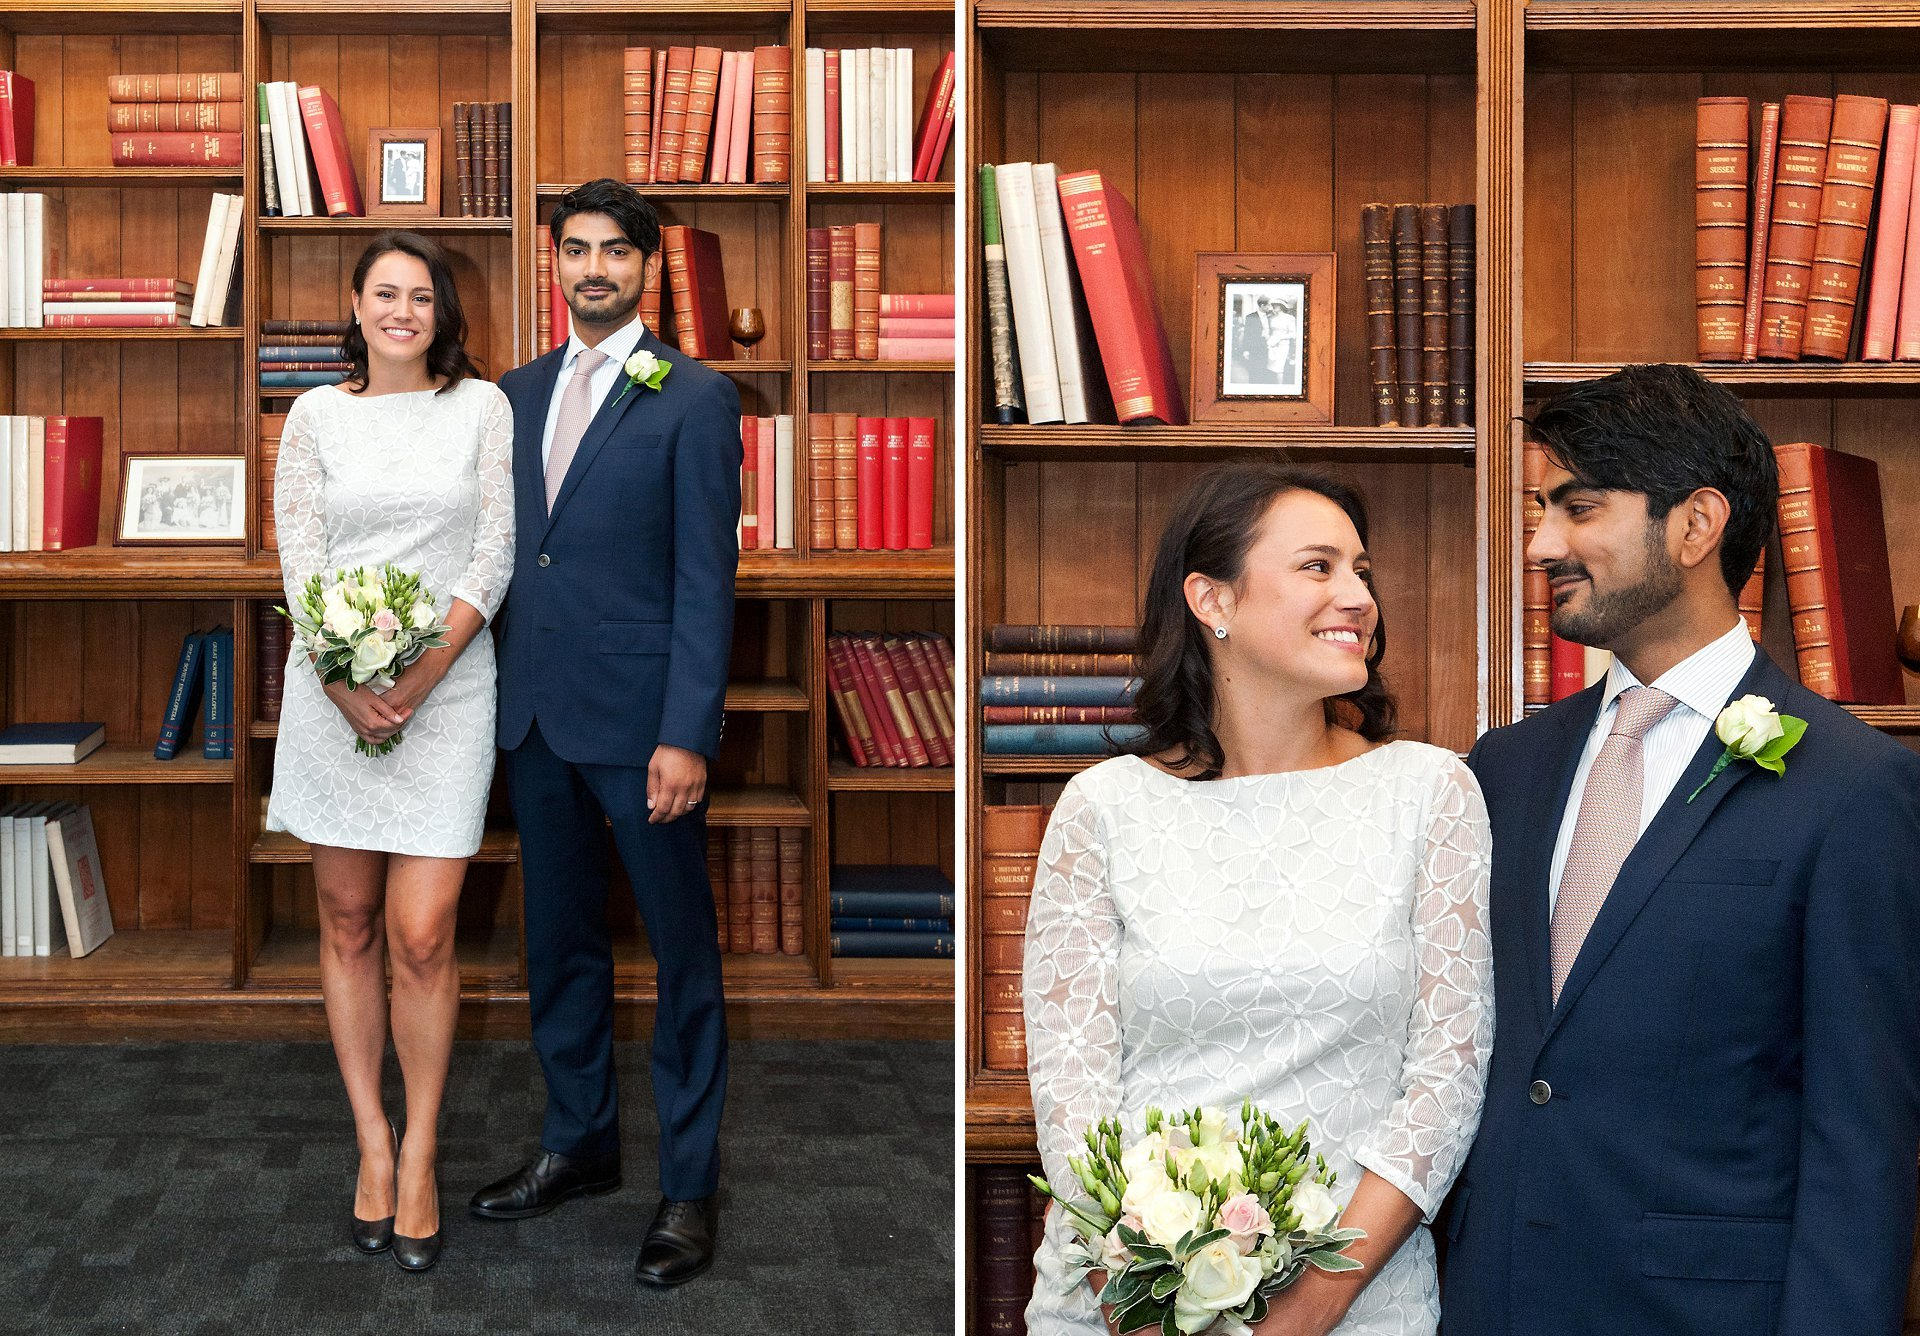 Wedding photography Mayfair Library - the stunning library bookcases make a fantastic backdrop when it is pouring with rain outside for this bride and groom after their Westminster civil marriage ceremony